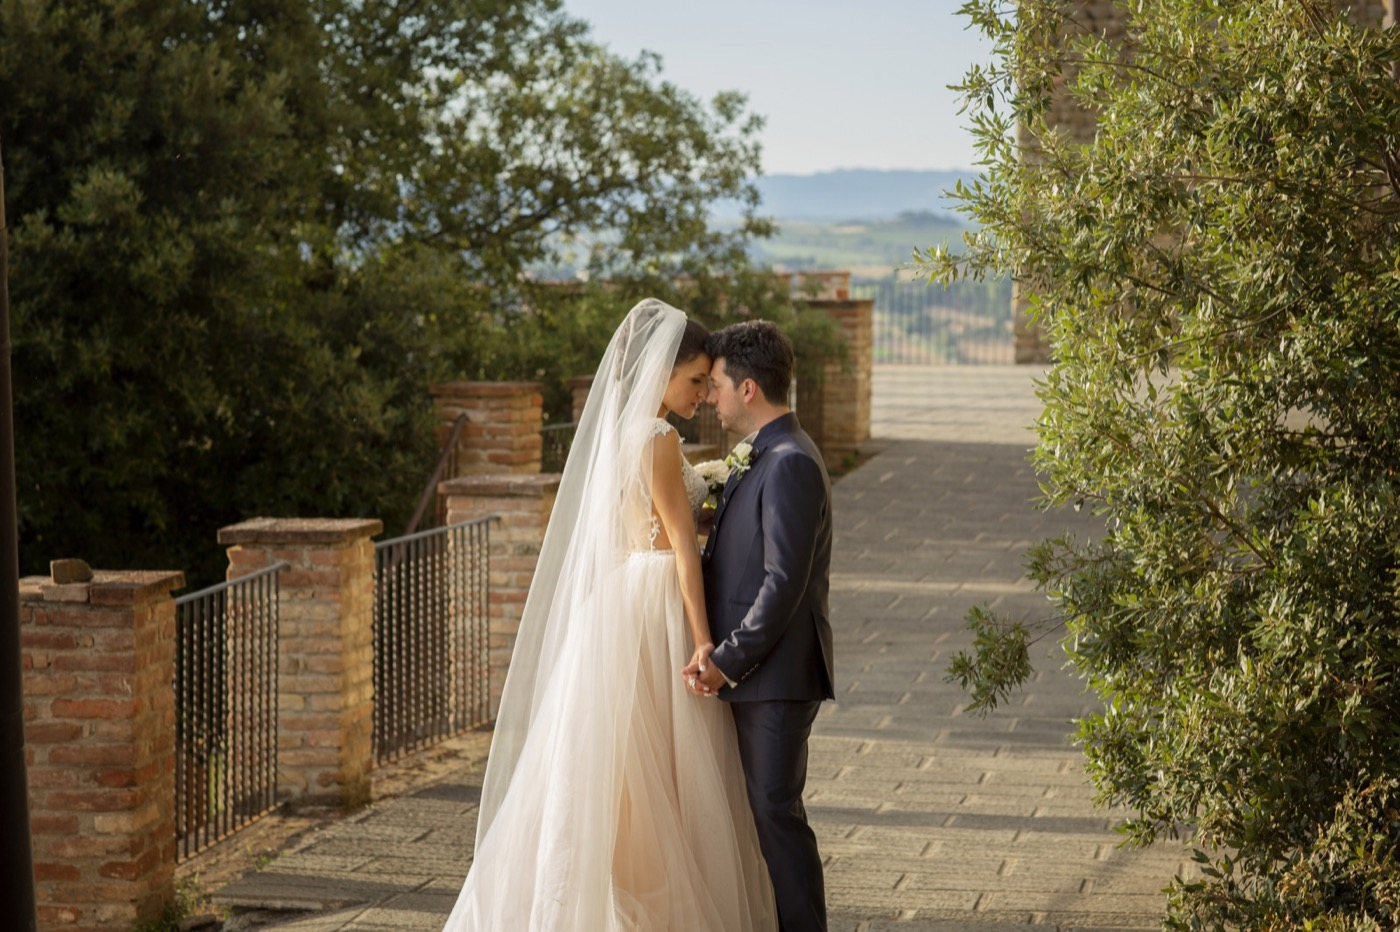 Claudio-Coppola-wedding-photographer-castello-rosciano-torgiano-50